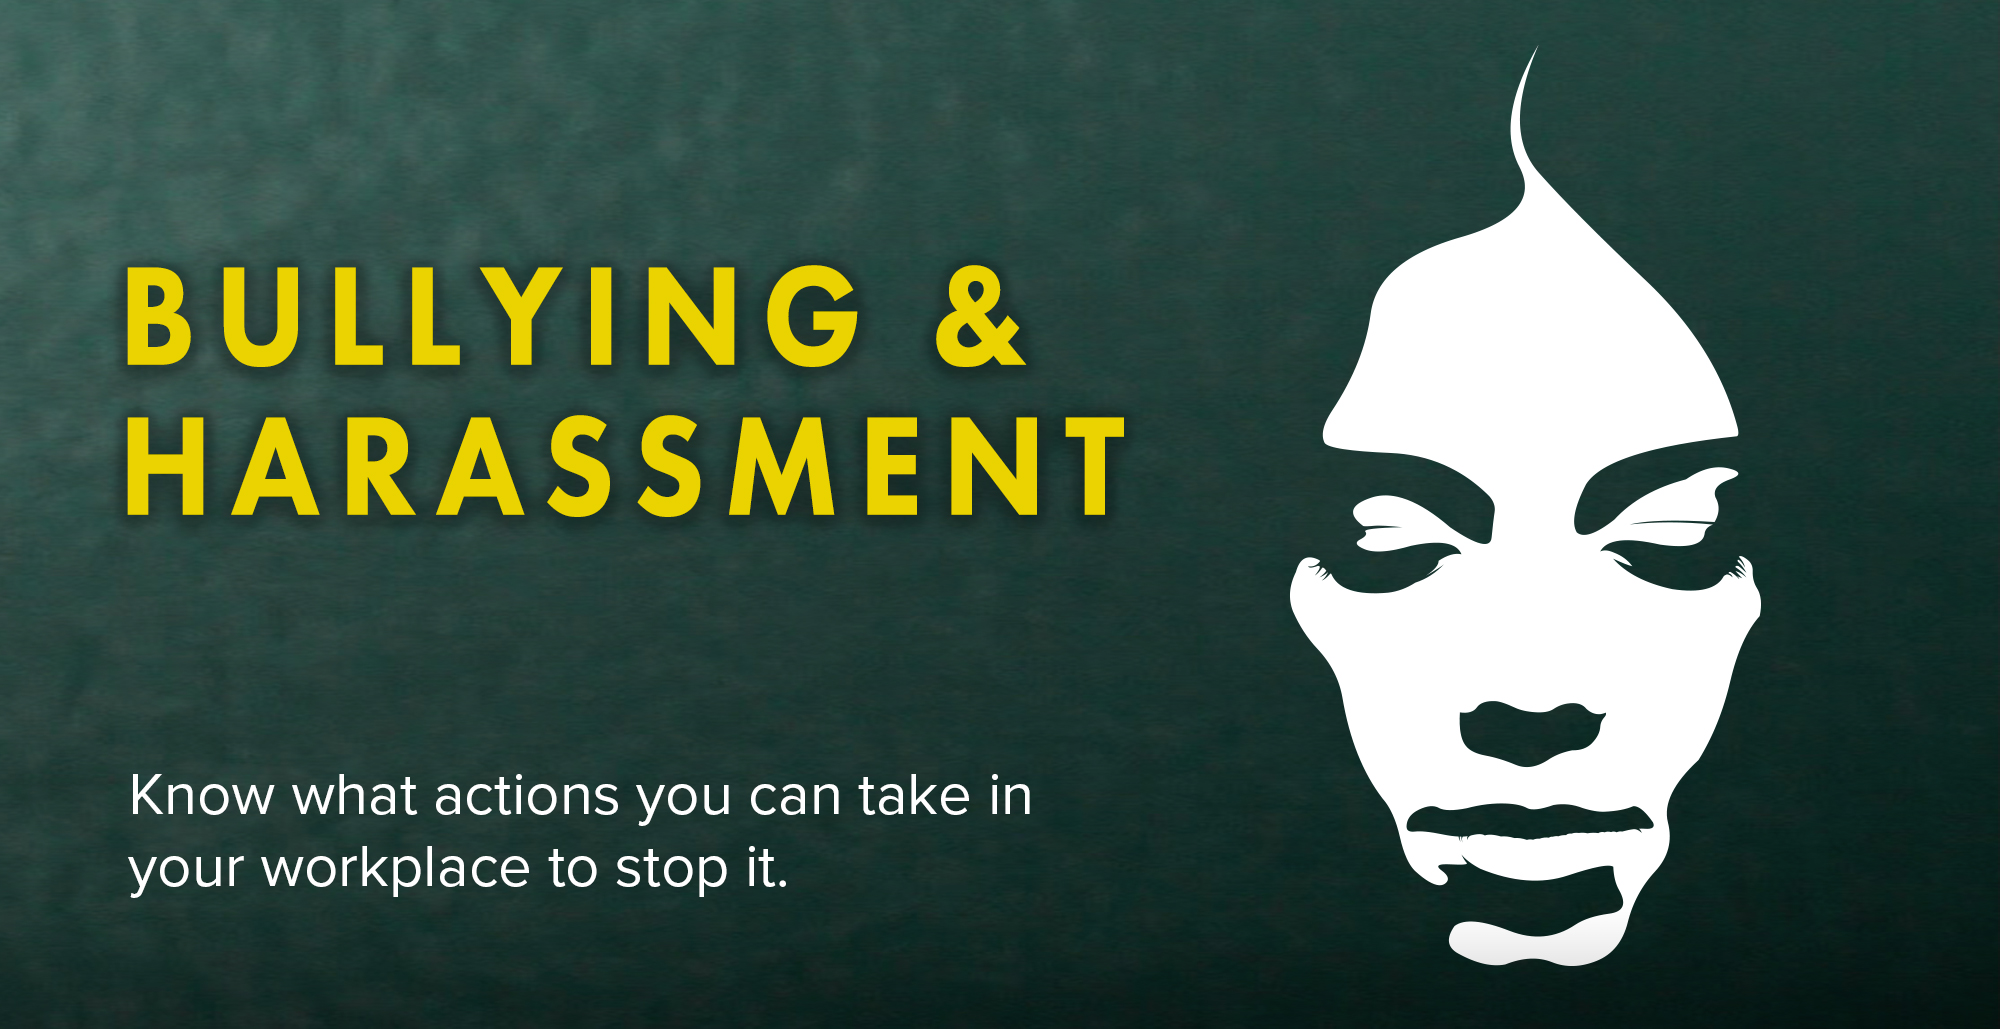 Cover image for: 'Bullying and Harassment'